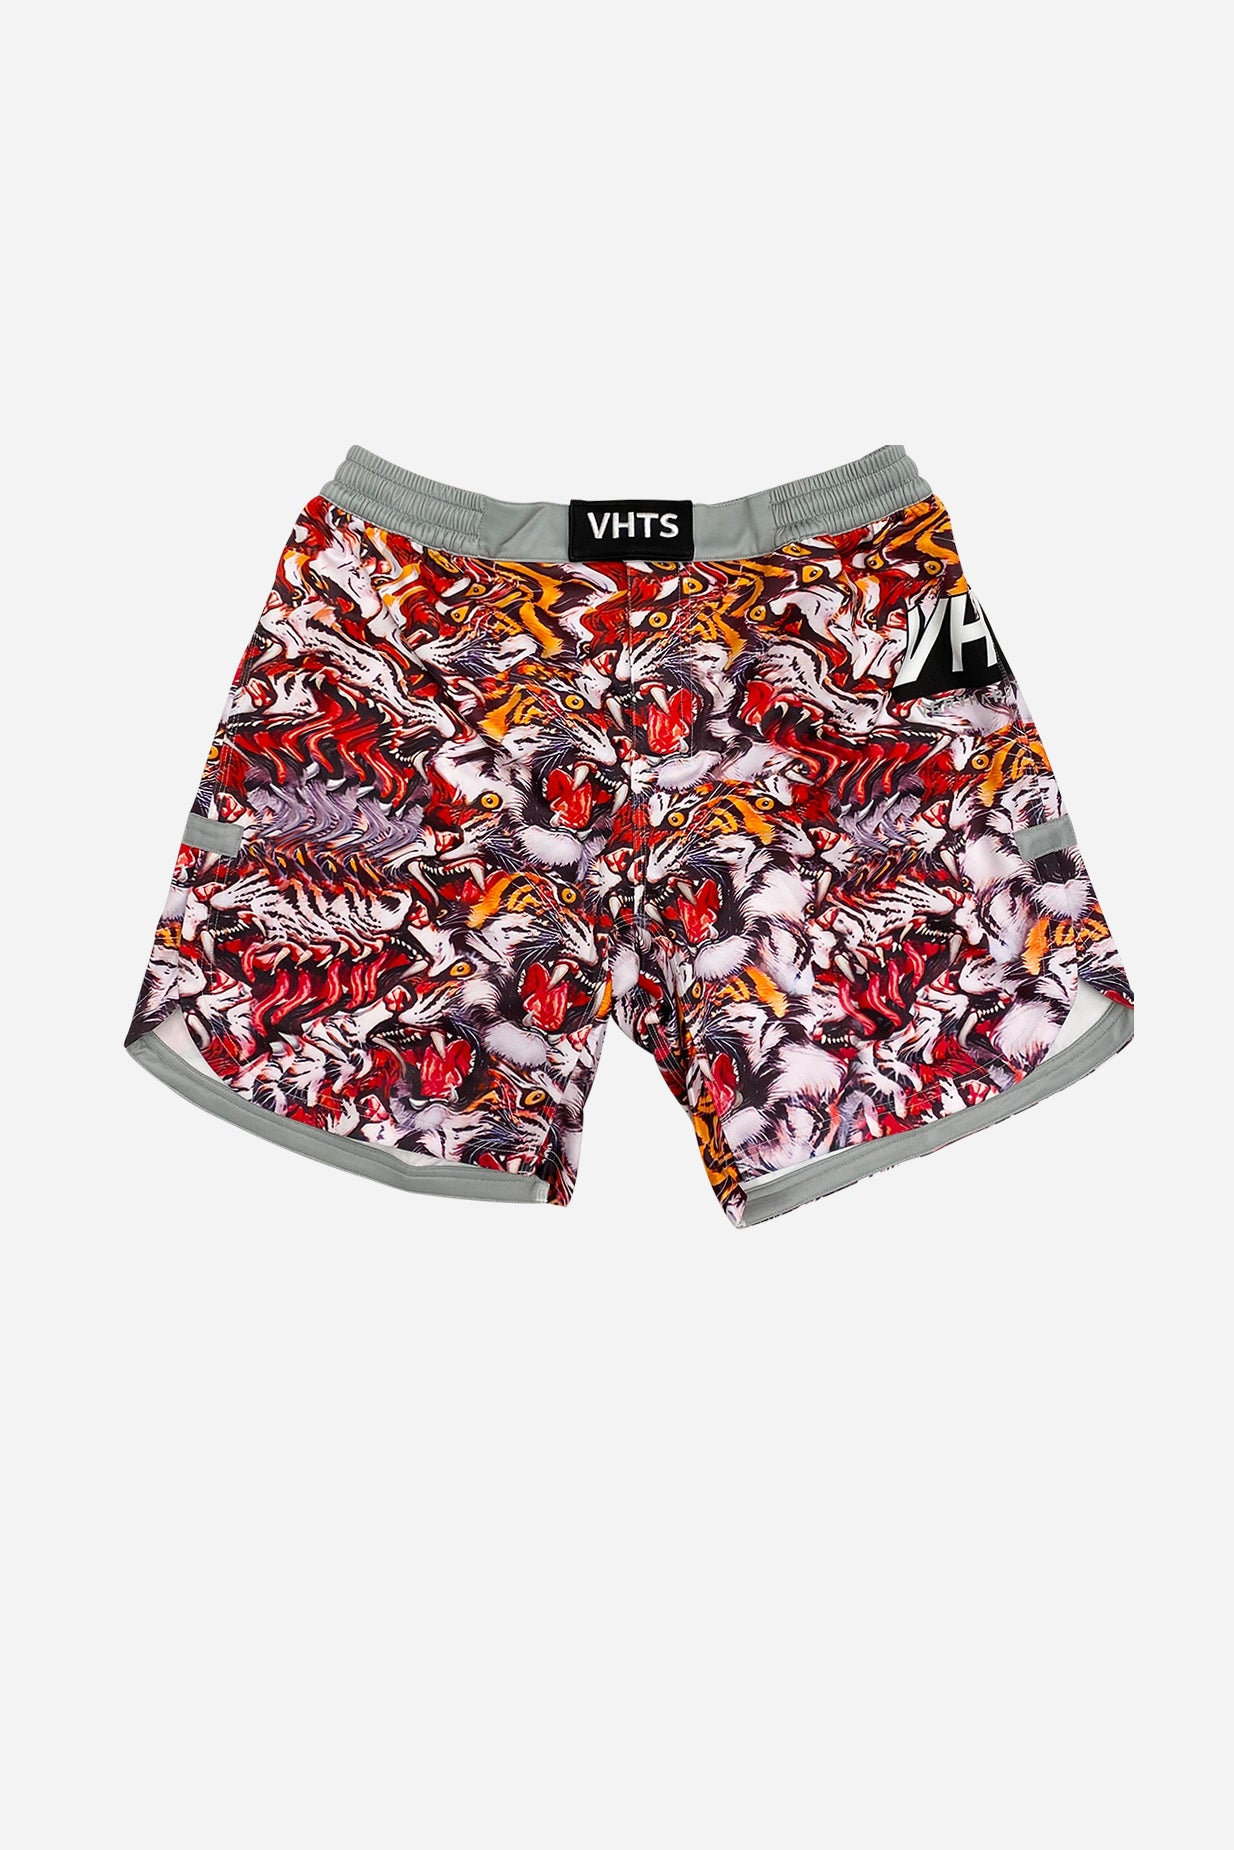 Trippy Tiger combat shorts This shorts is collaborative product between VHTS and graphic artist Voja based in Slovenia.  His creative and embellishing graphic art style is well reflected on the shorts. Tiger themed graphic is eye-catching and visually intense.  Feature  4 way stretch soft fabric (80% polyester x 20% lycra)  Flat draw string with plastic dip tip  Mouth guard pocket  Sublimation printing technique  Curved side opening  Elastic waist band  Velcro closing    vhts europe